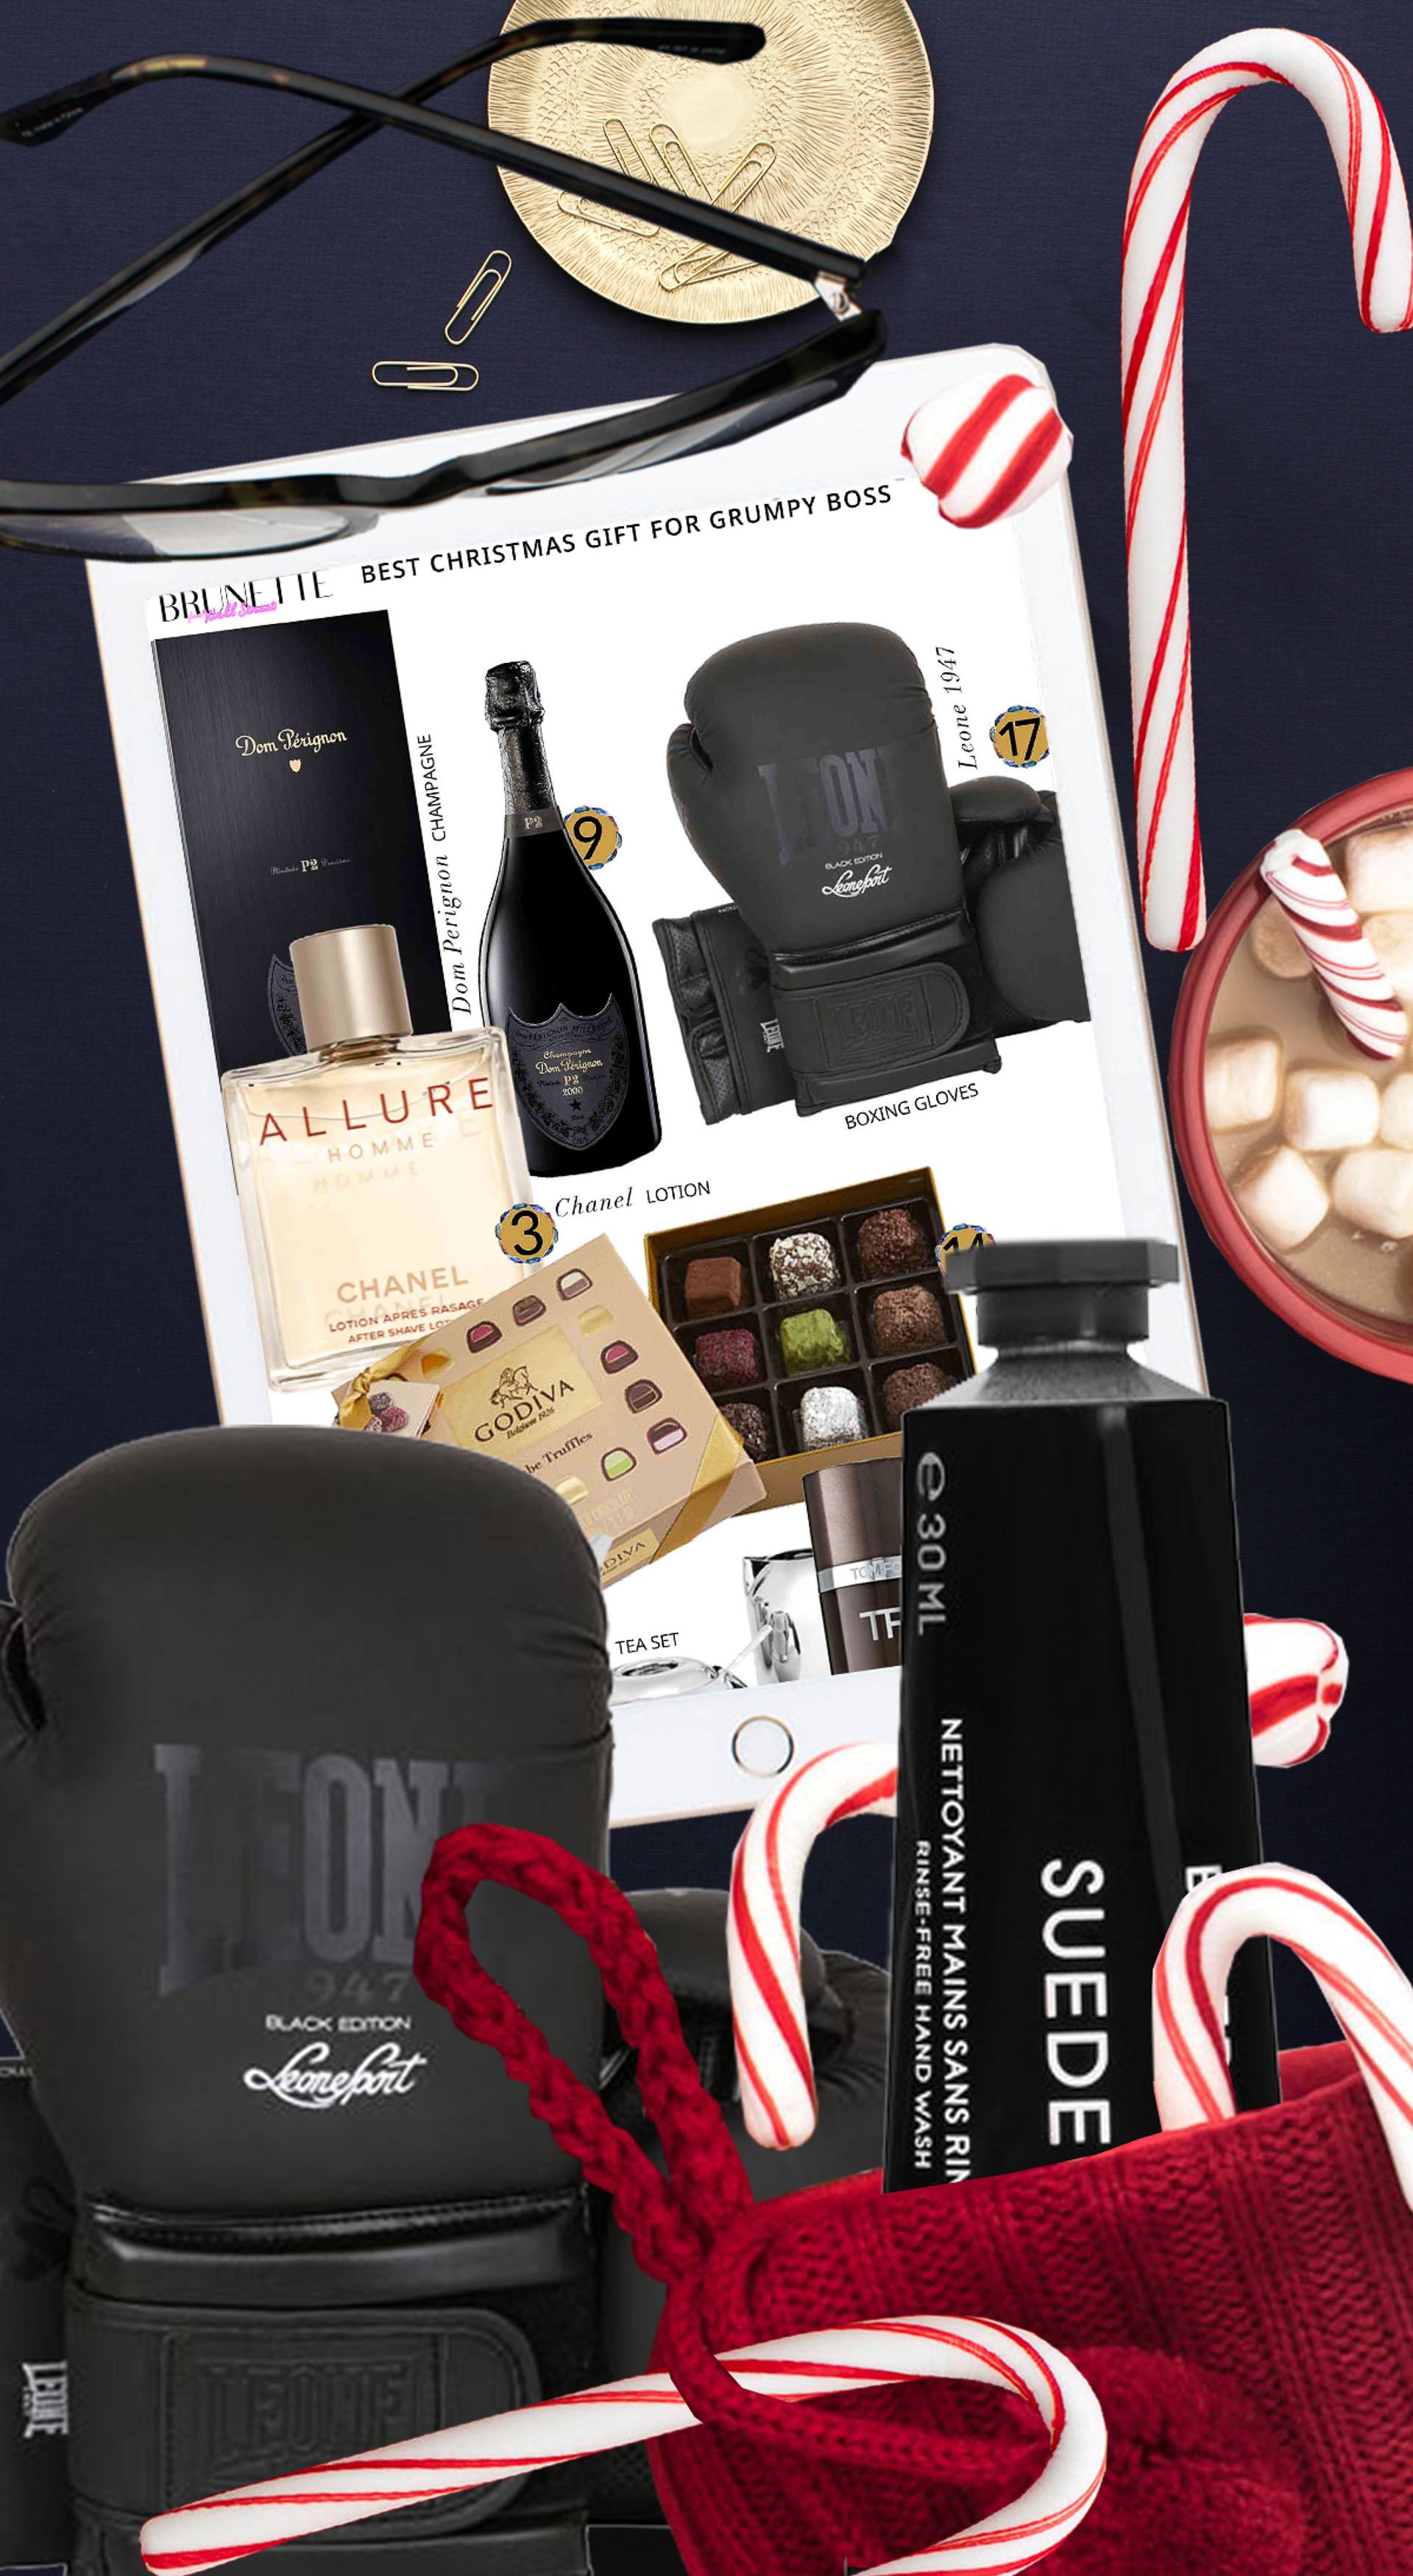 Brunette from Wall Street the best 2020 Christmas gifts for grumpy boss